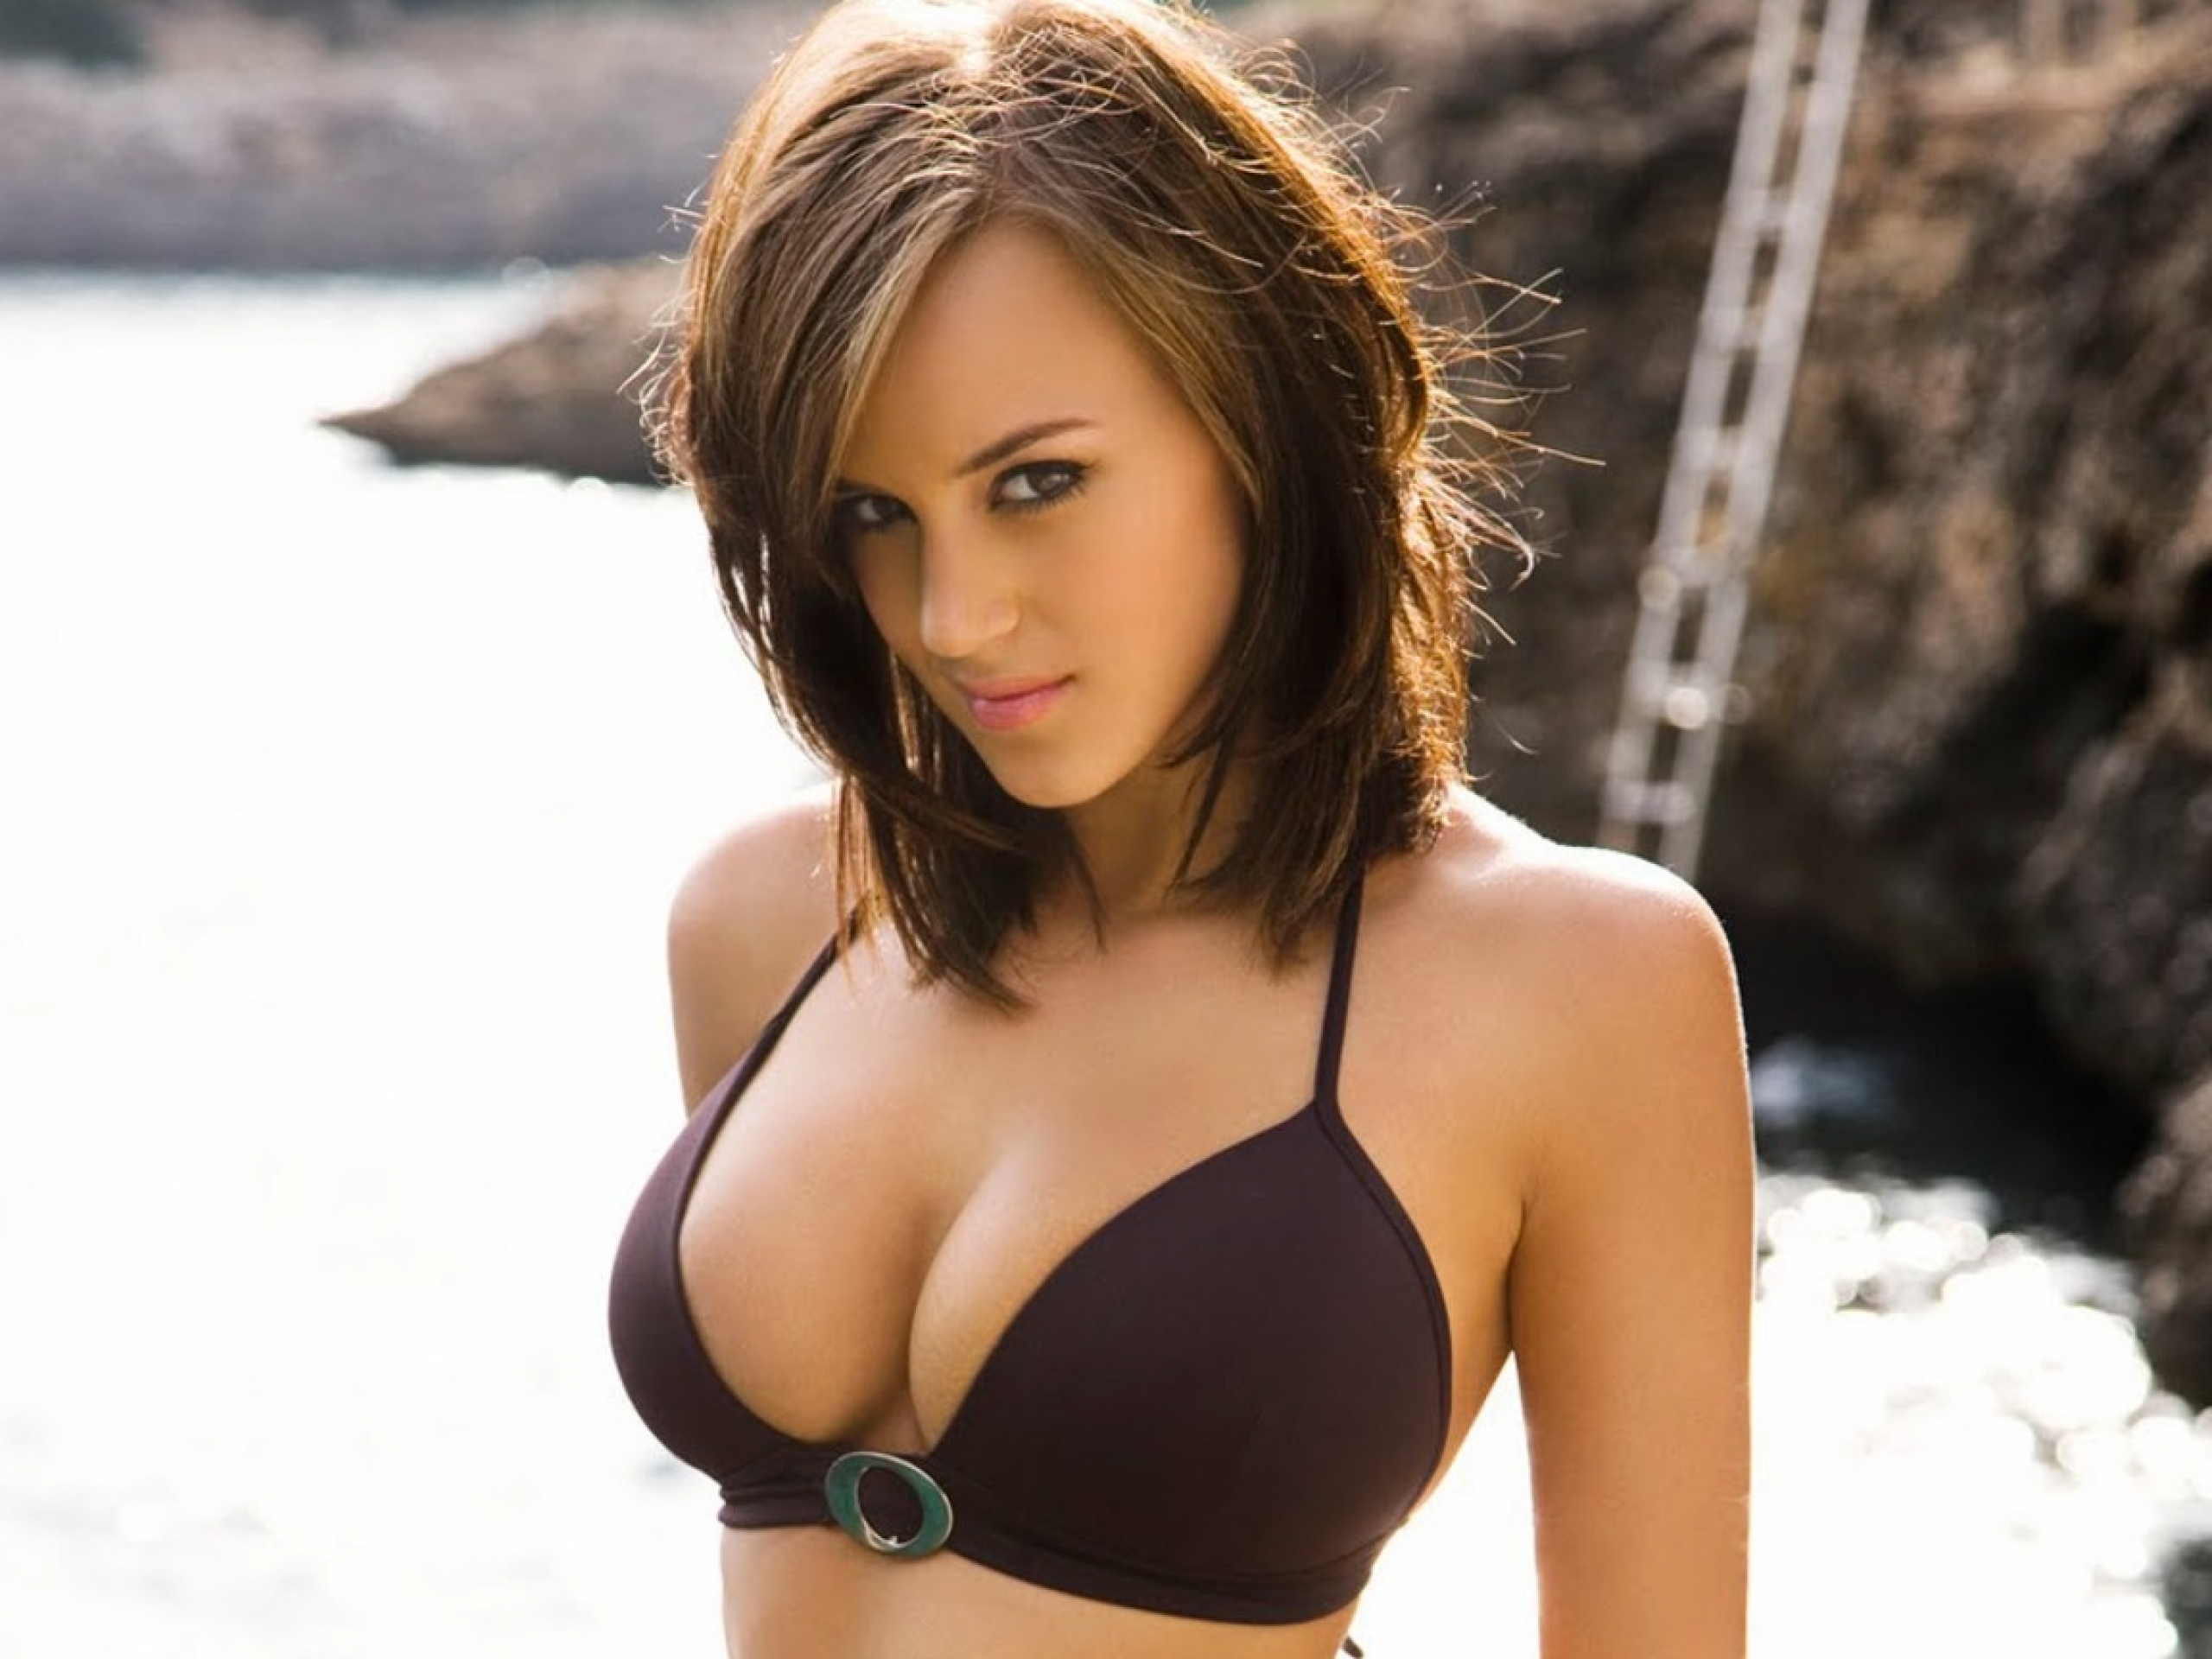 Hot girl ever, gif pussy loving